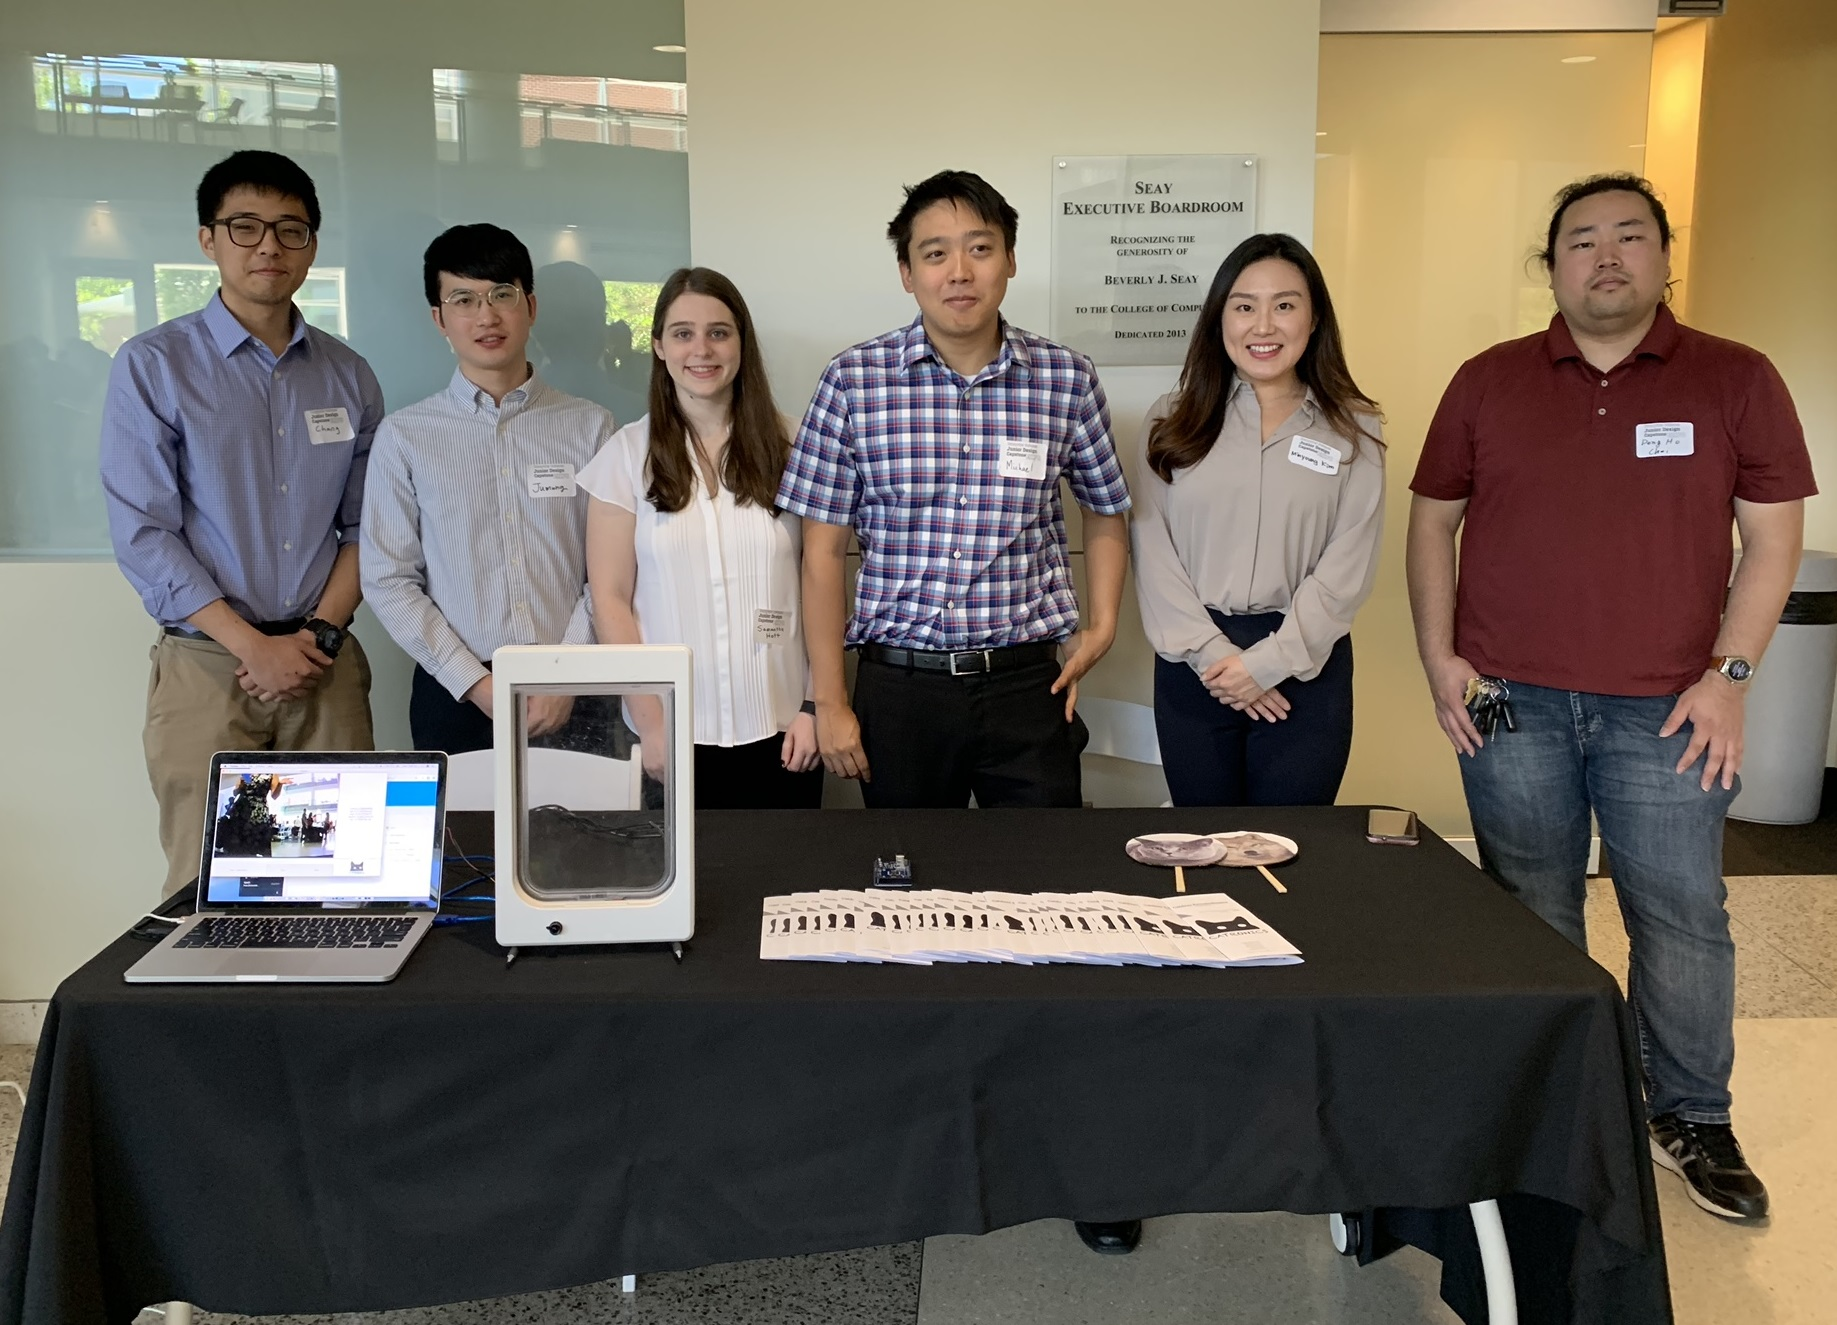 Students stand behind their expo table; the table contains a laptop displaying a software demo, a catdoor used for the demo, brochures for the application, and images of cat, dog, and wolf faces,